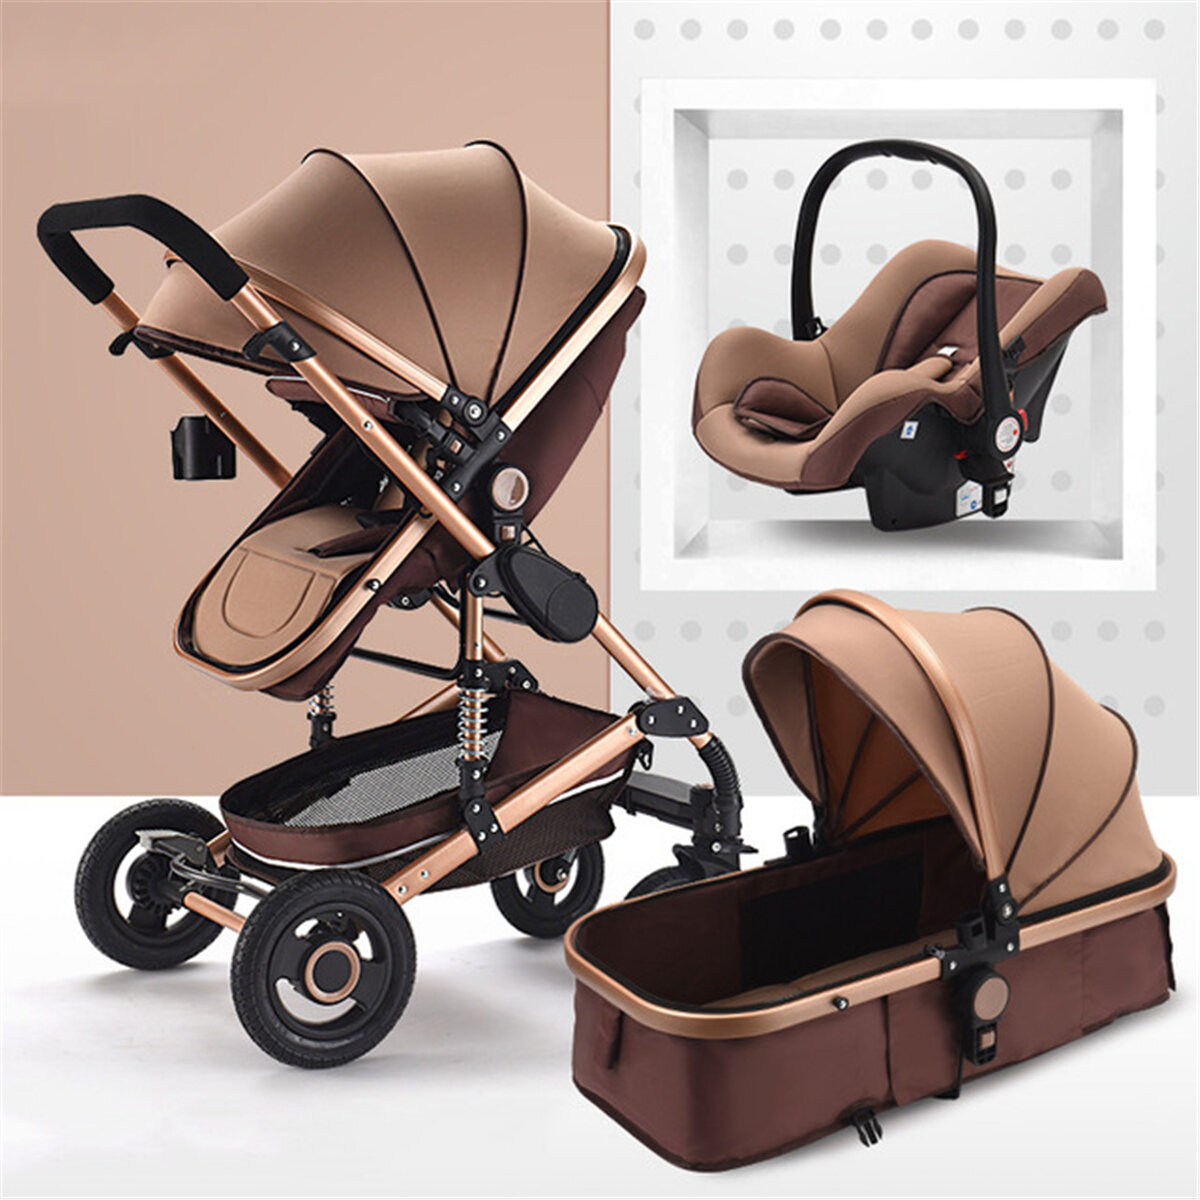 3 in 1 Baby Stroller High View Landscape Stroller Folding Baby Carriage Car Seat